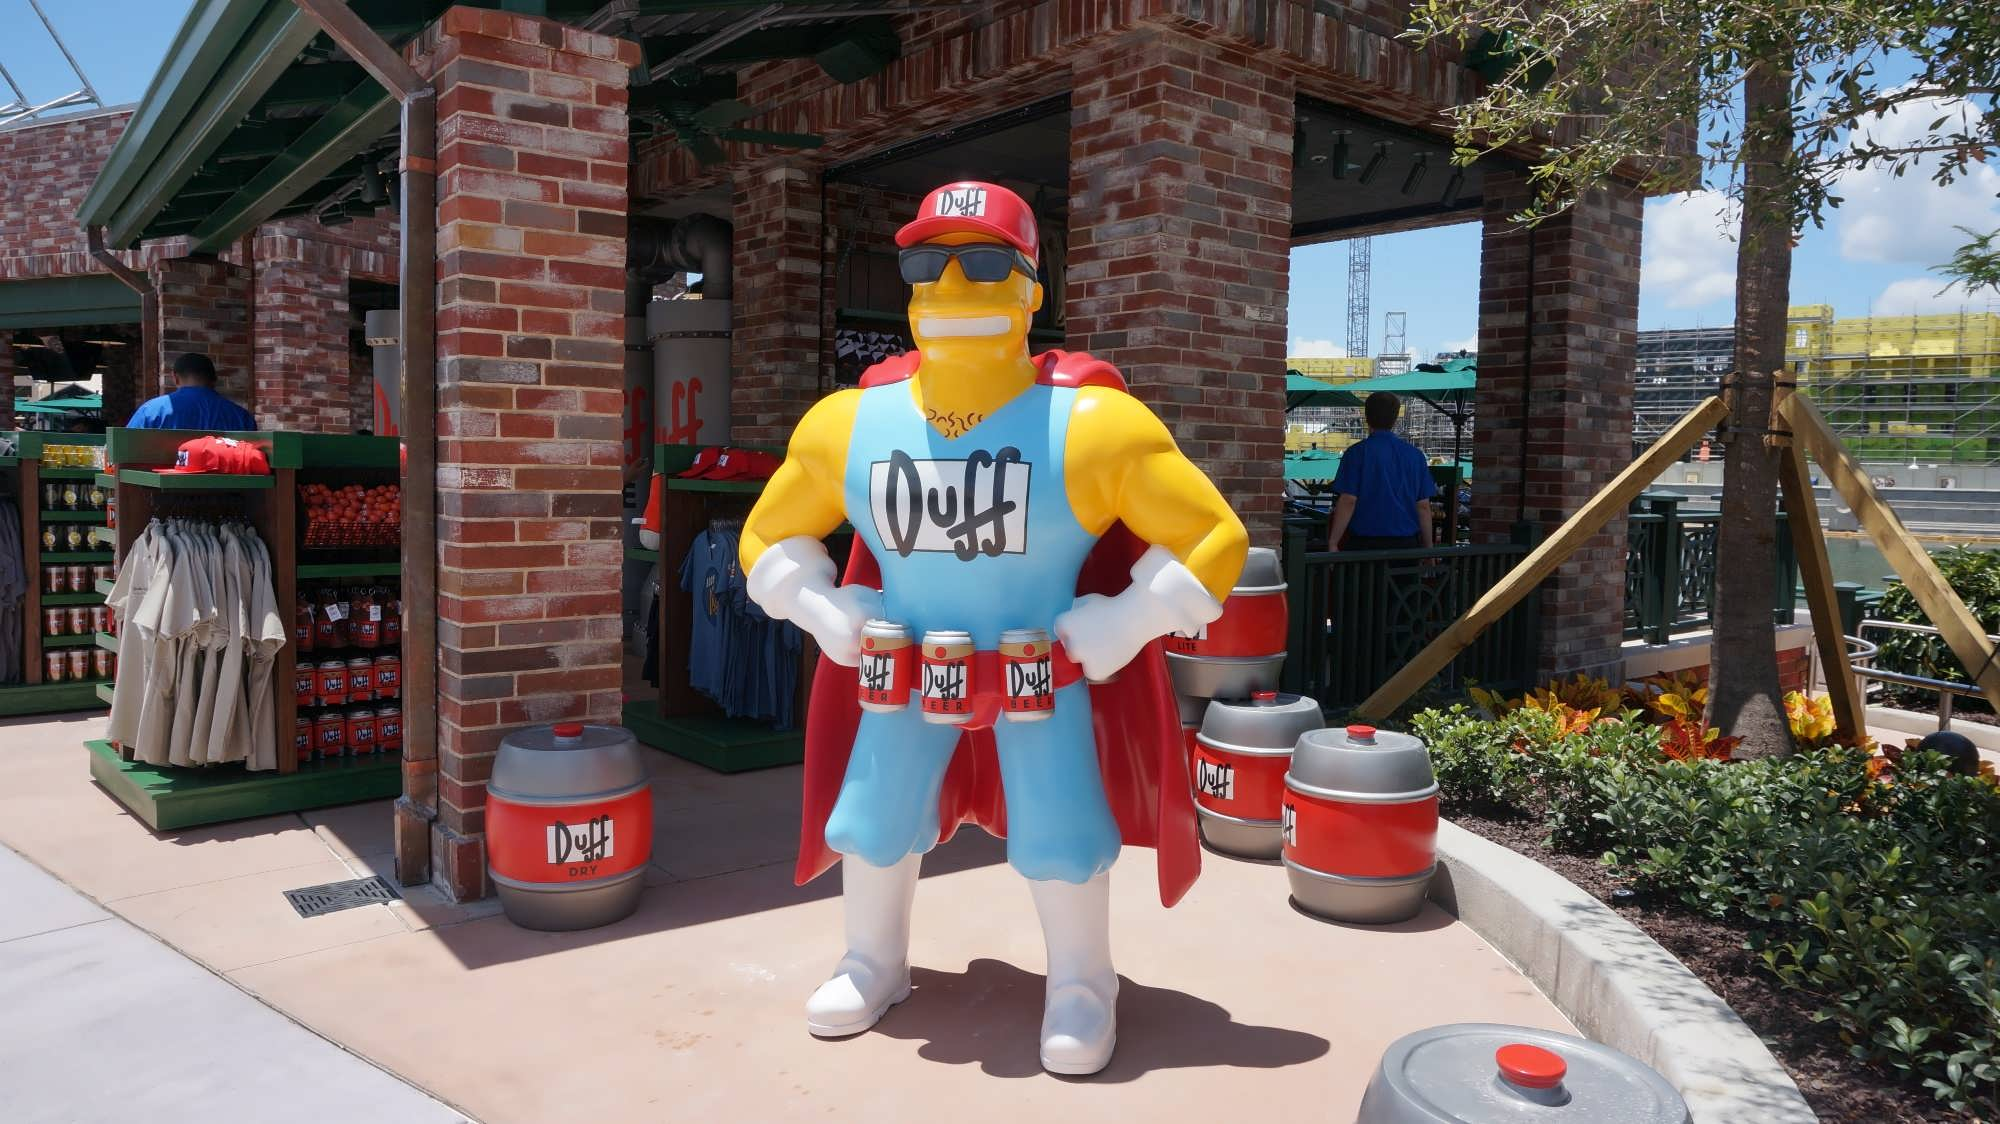 Duffman poses outside of the Duff Brewery gift shop